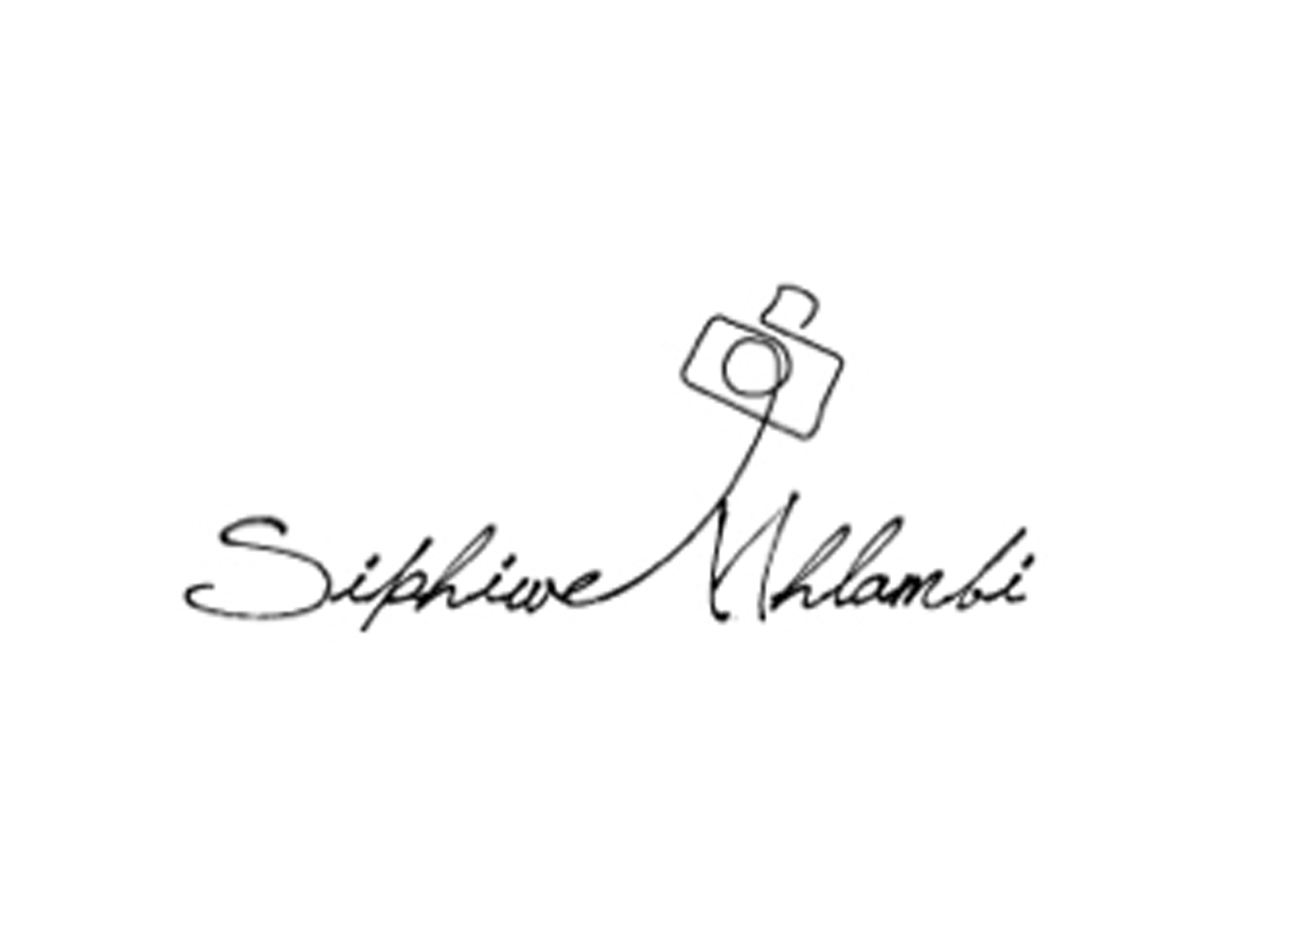 siphiwe-mhlambi-signature-logo-designers-agent-orange-graphic-agency-south-african-branding-company.jpg